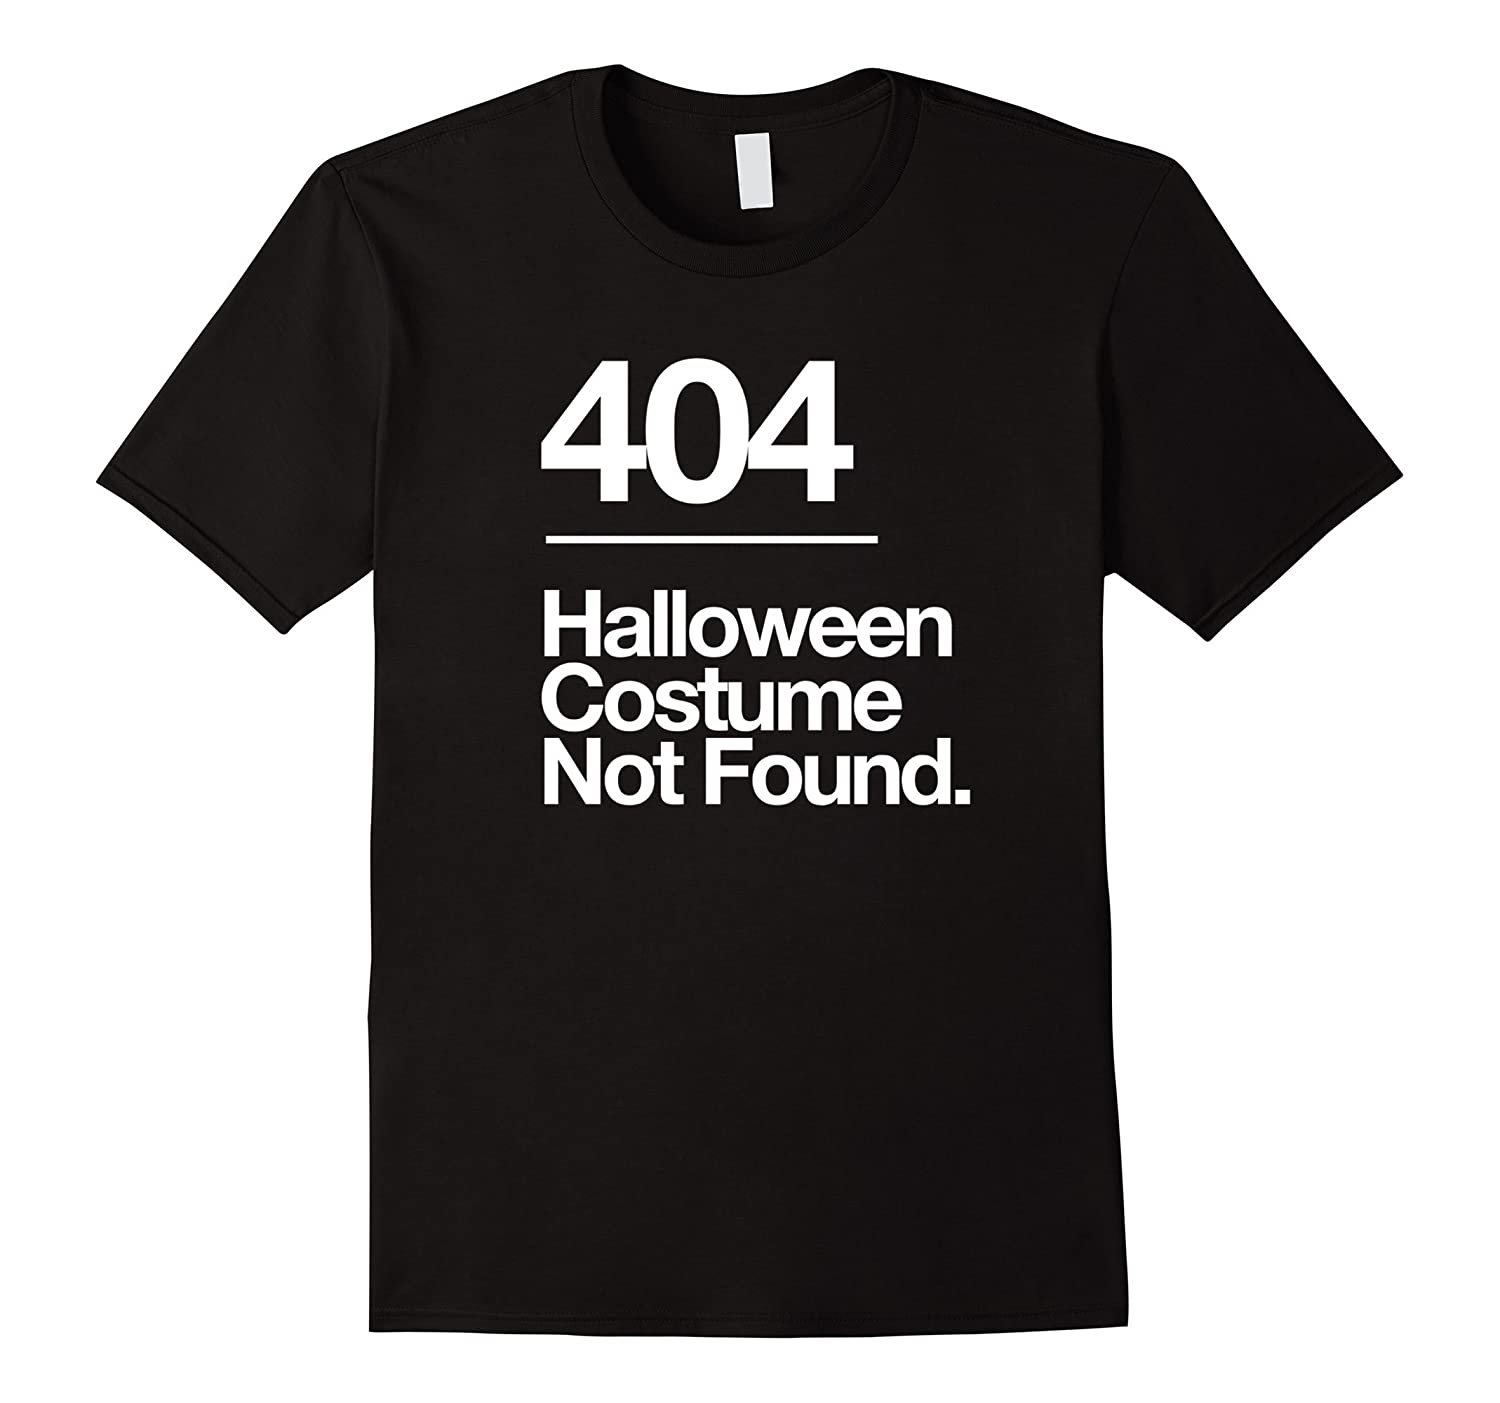 404 Costume Not Found Shirt Funny Costume Fail T-Shirt-Rose